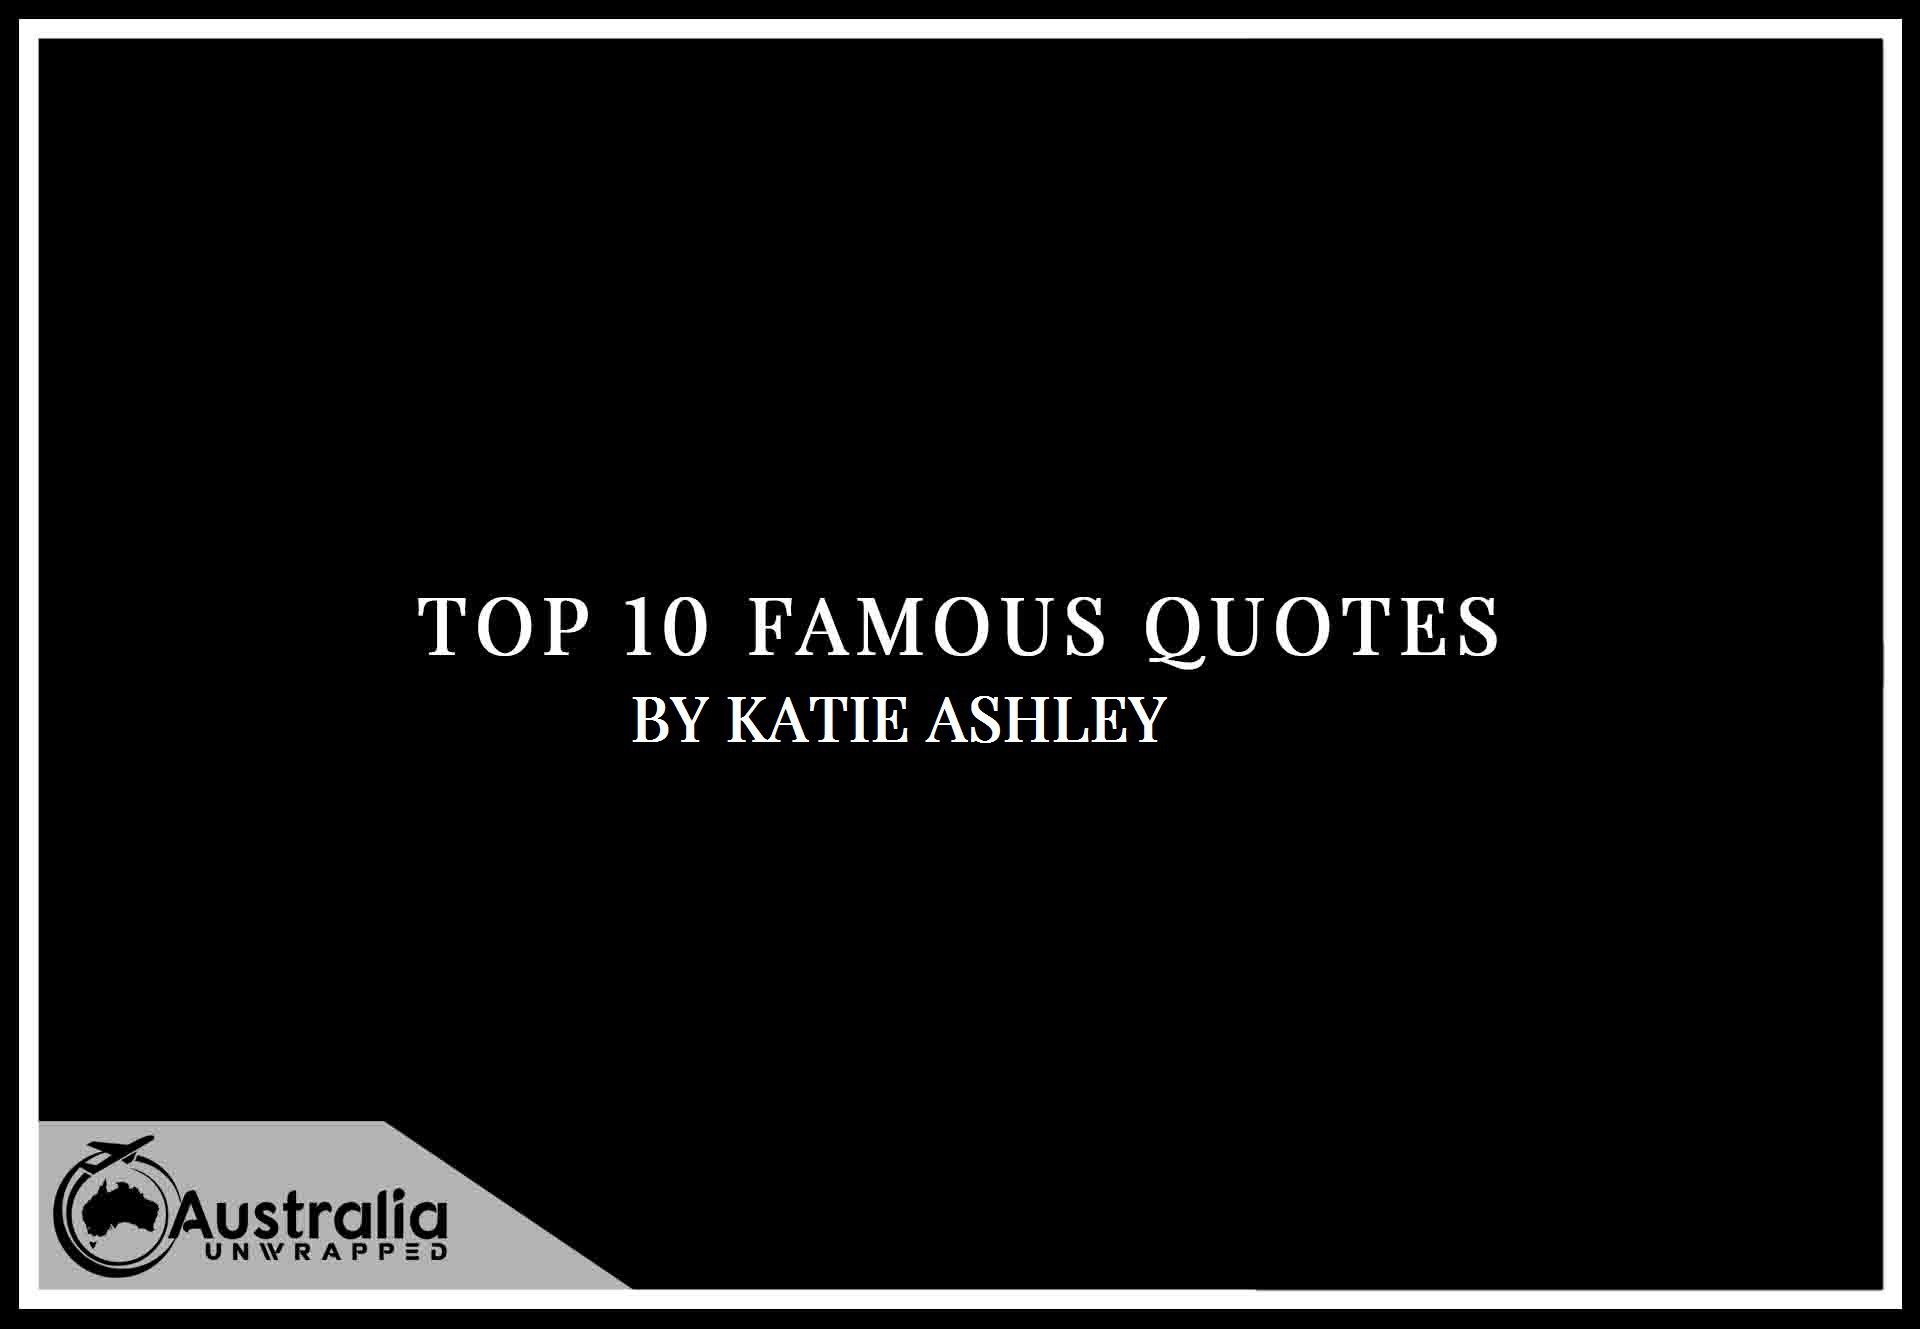 Katie Ashley's Top 10 Popular and Famous Quotes